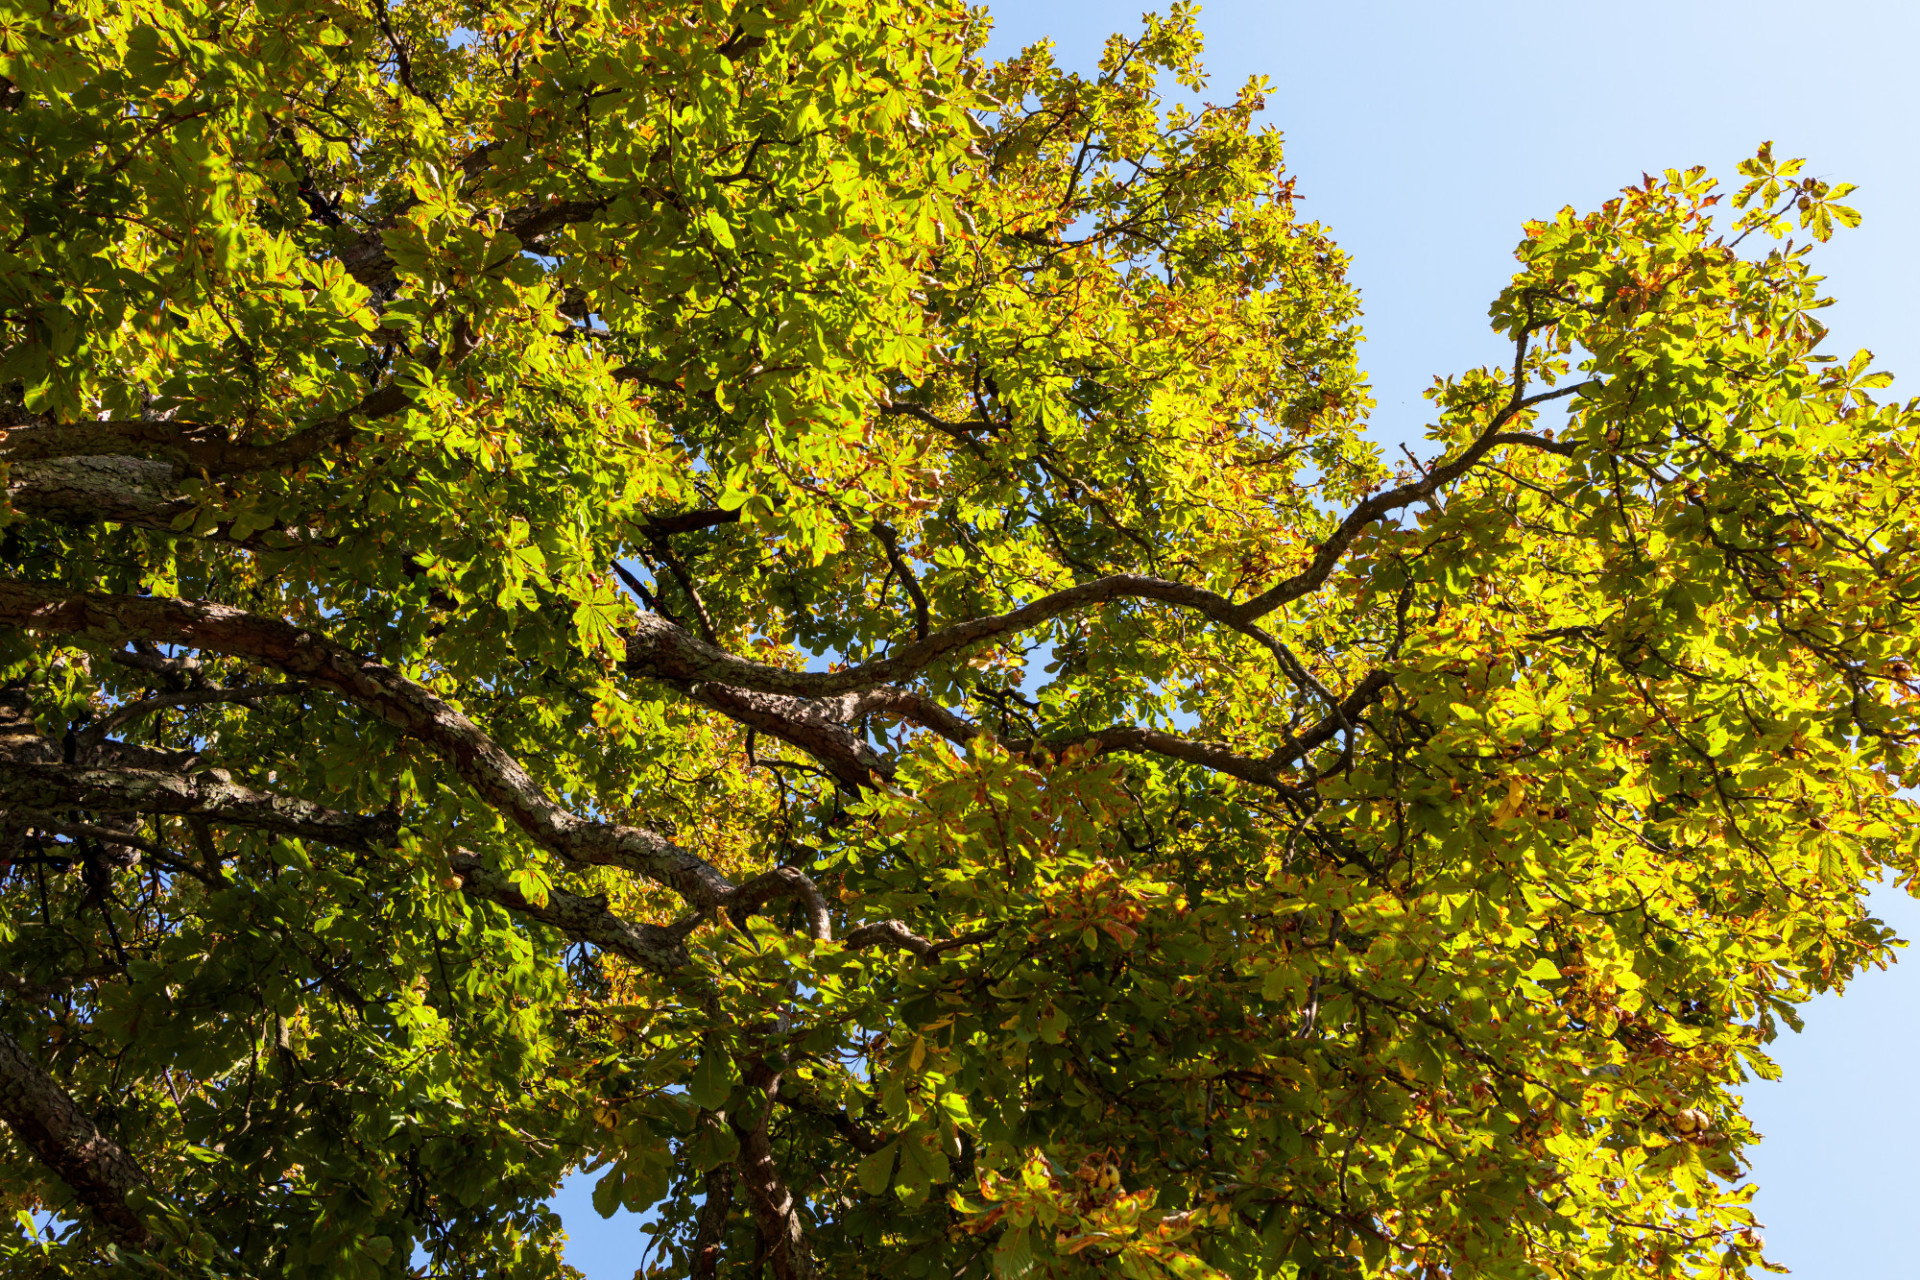 View up to a chestnut tree